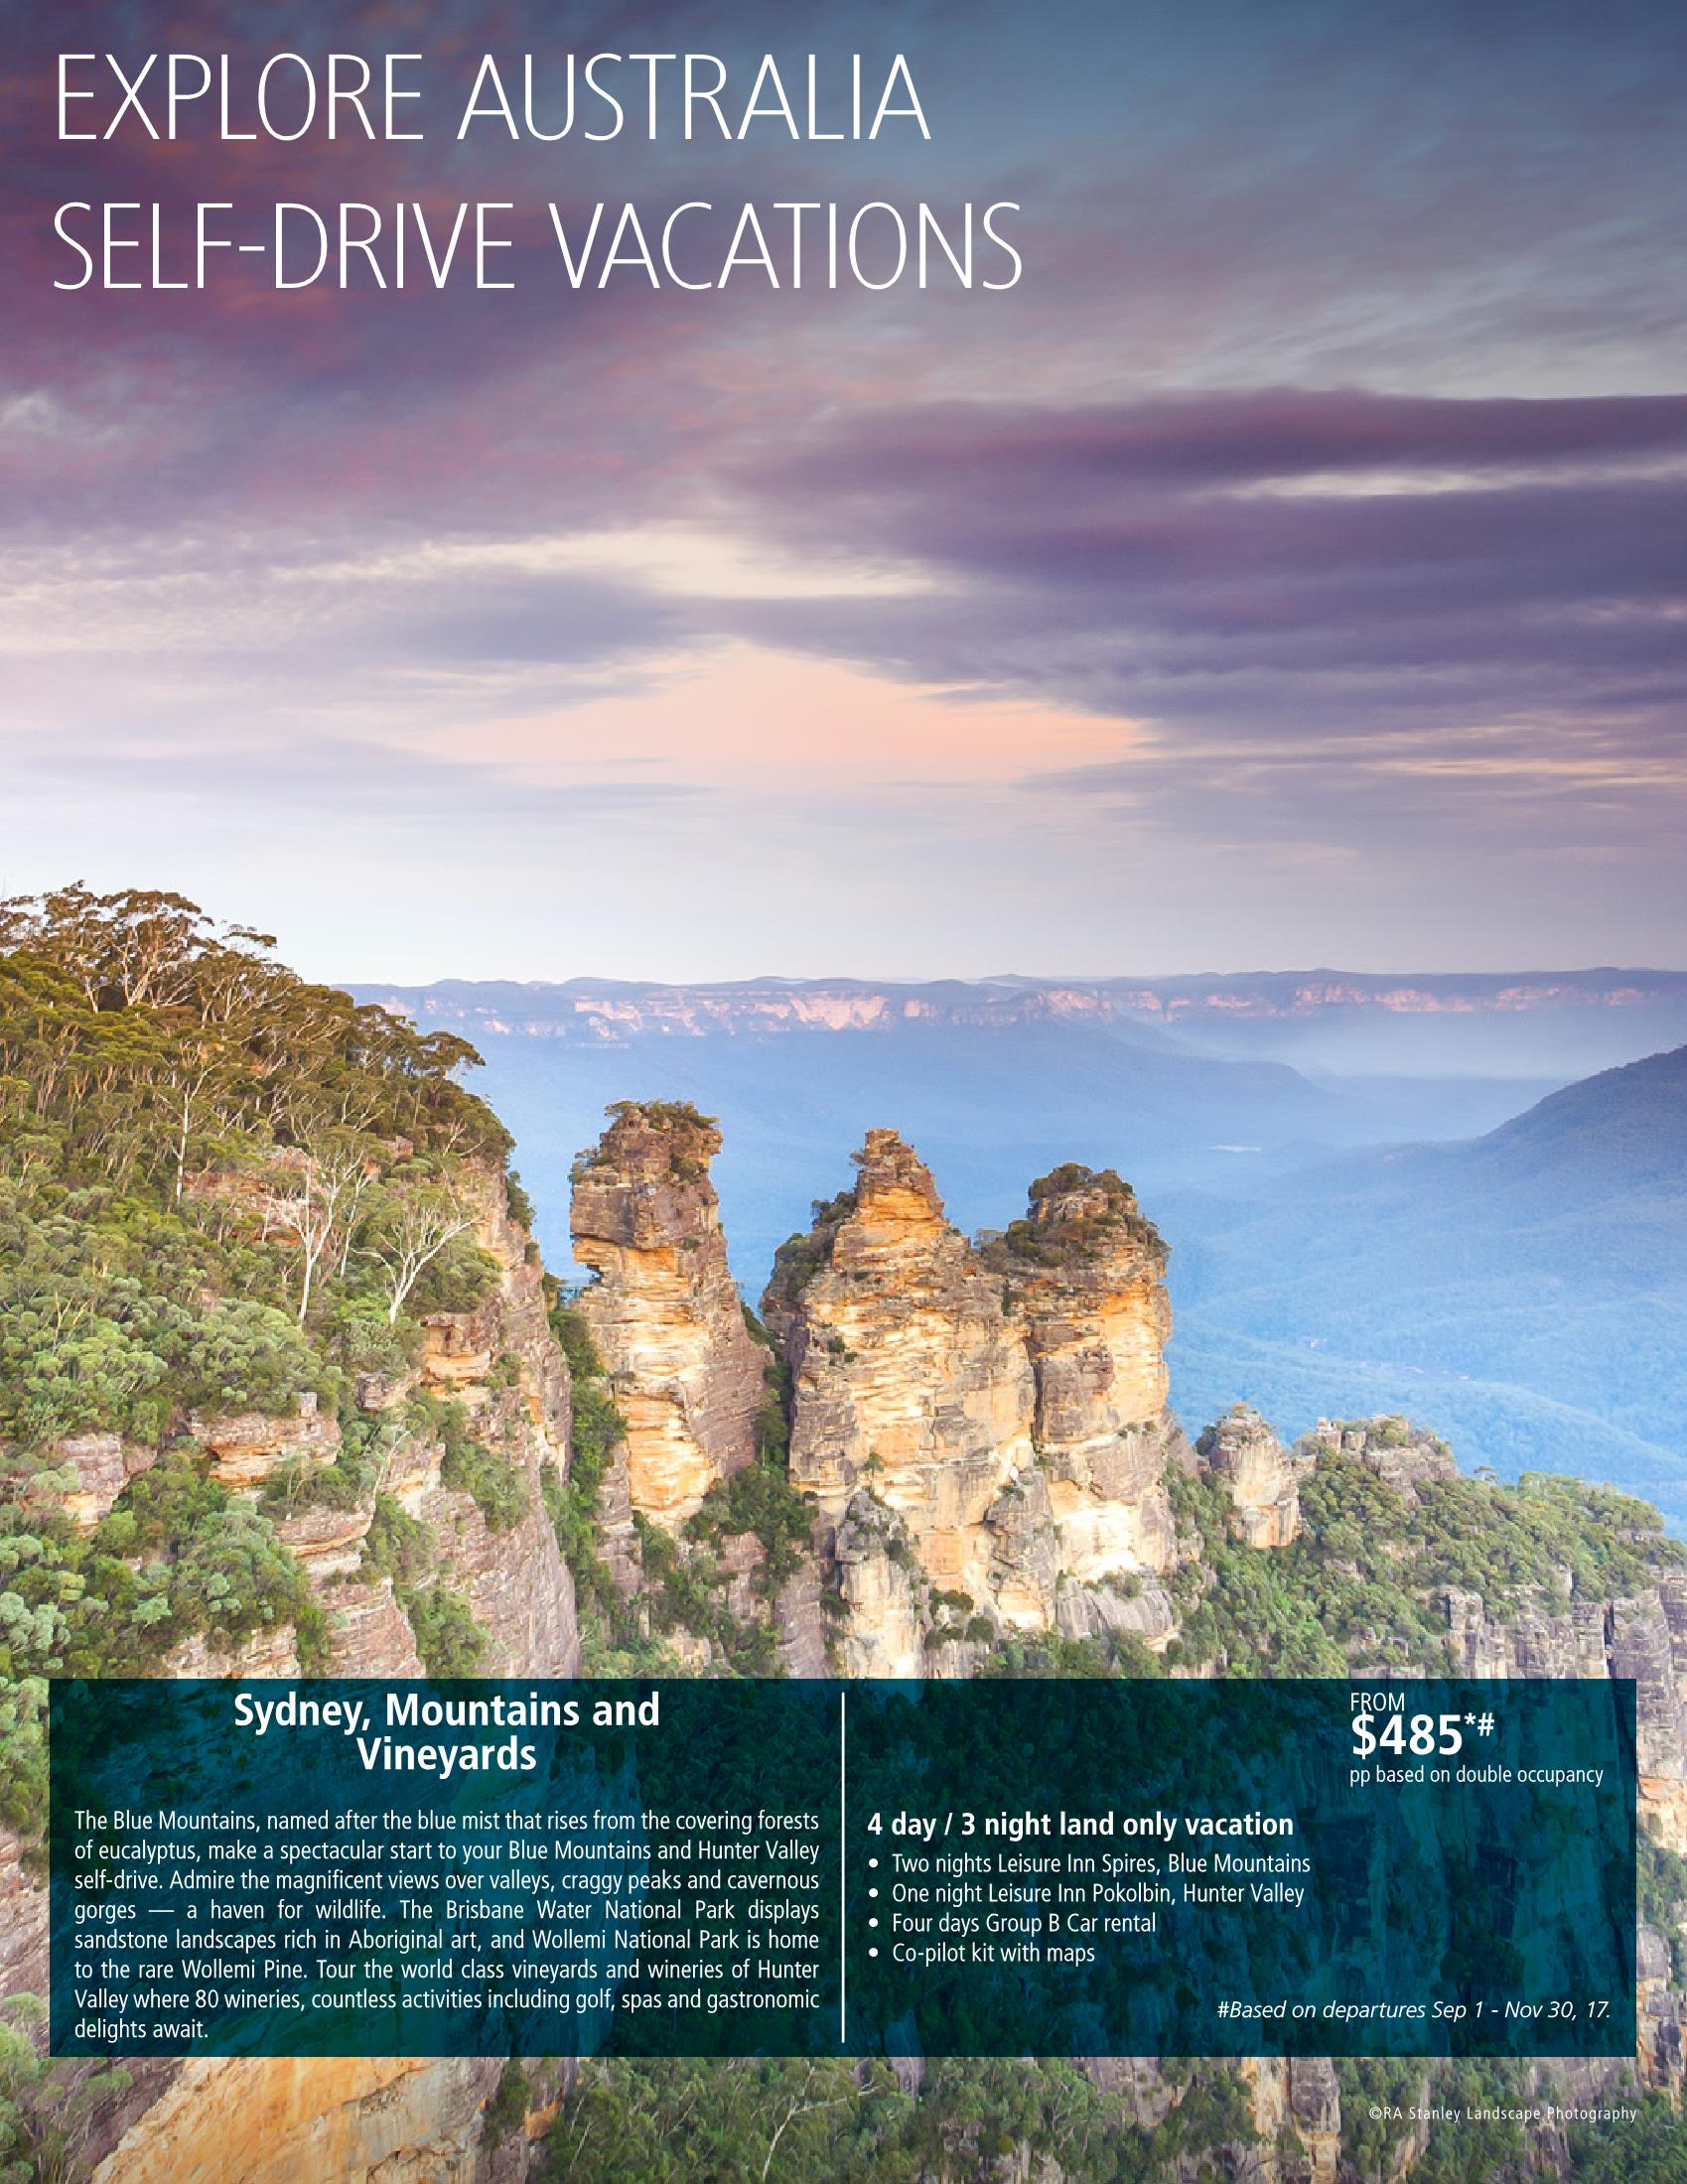 Self-drive Australia by Down Under Answers - Austalia custom vacation